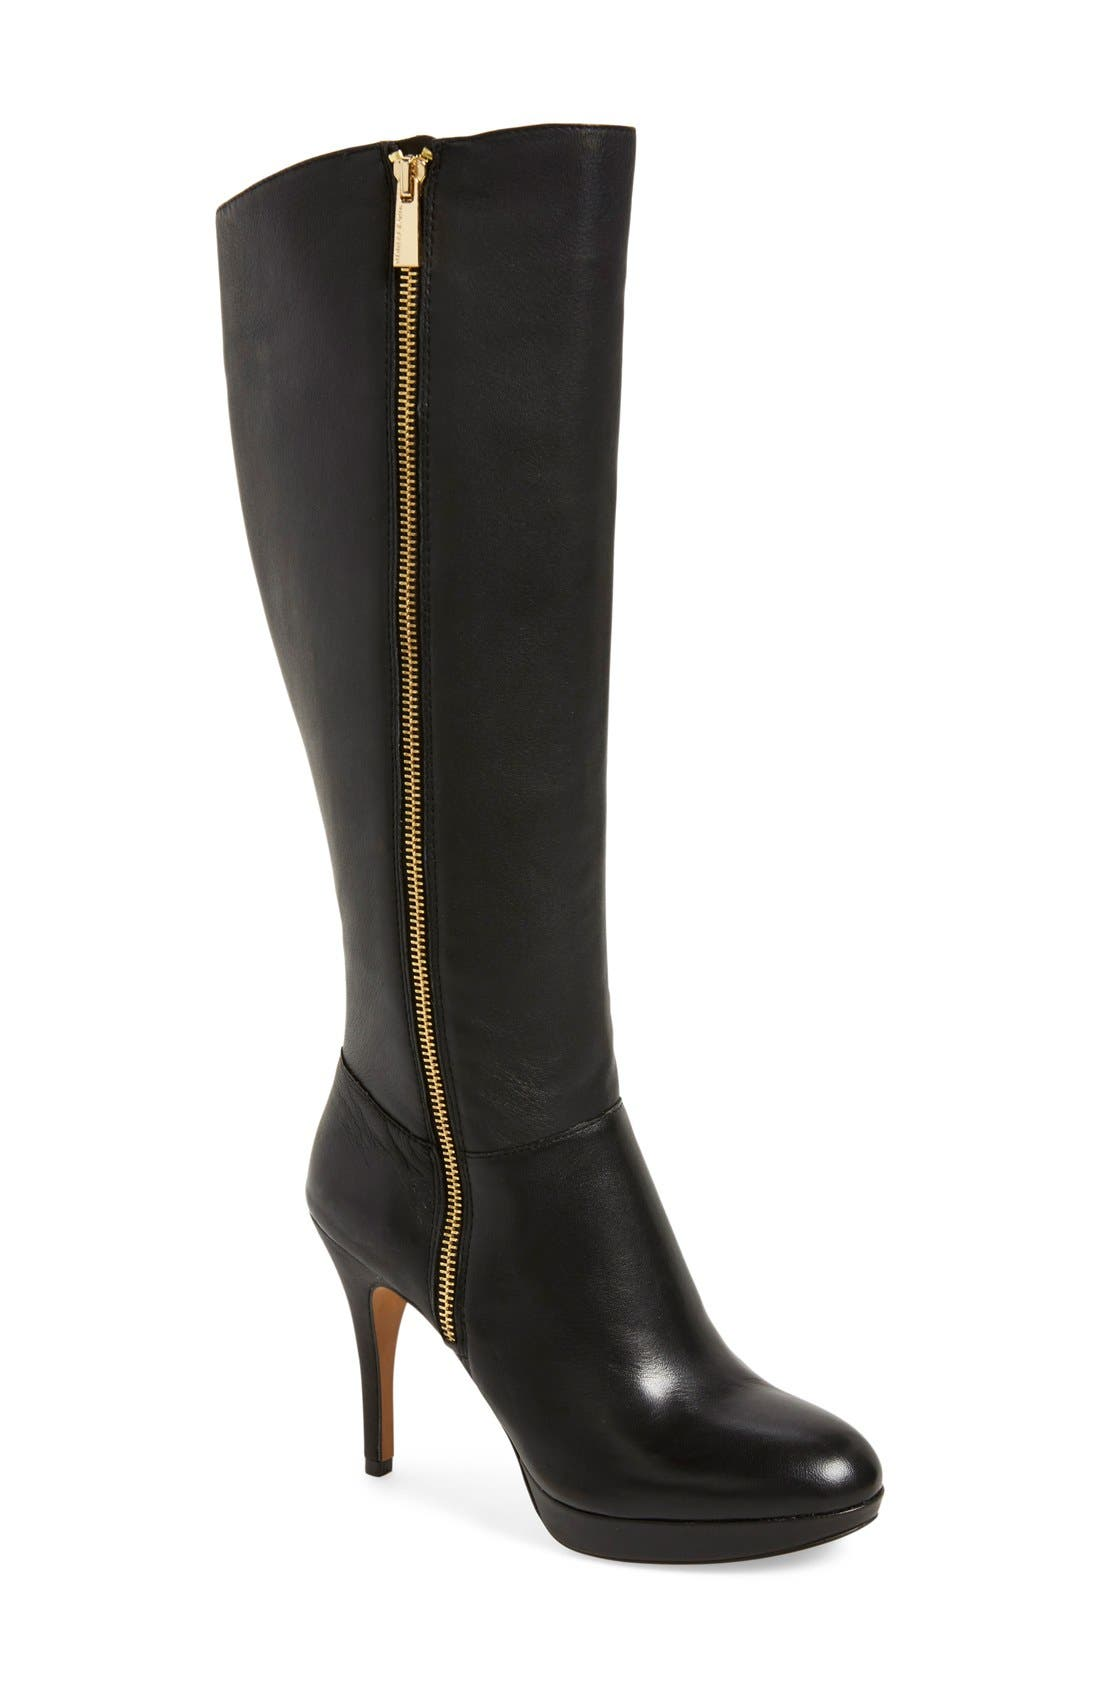 VINCE CAMUTO 'Emilian' Tall Boot, Main, color, 001